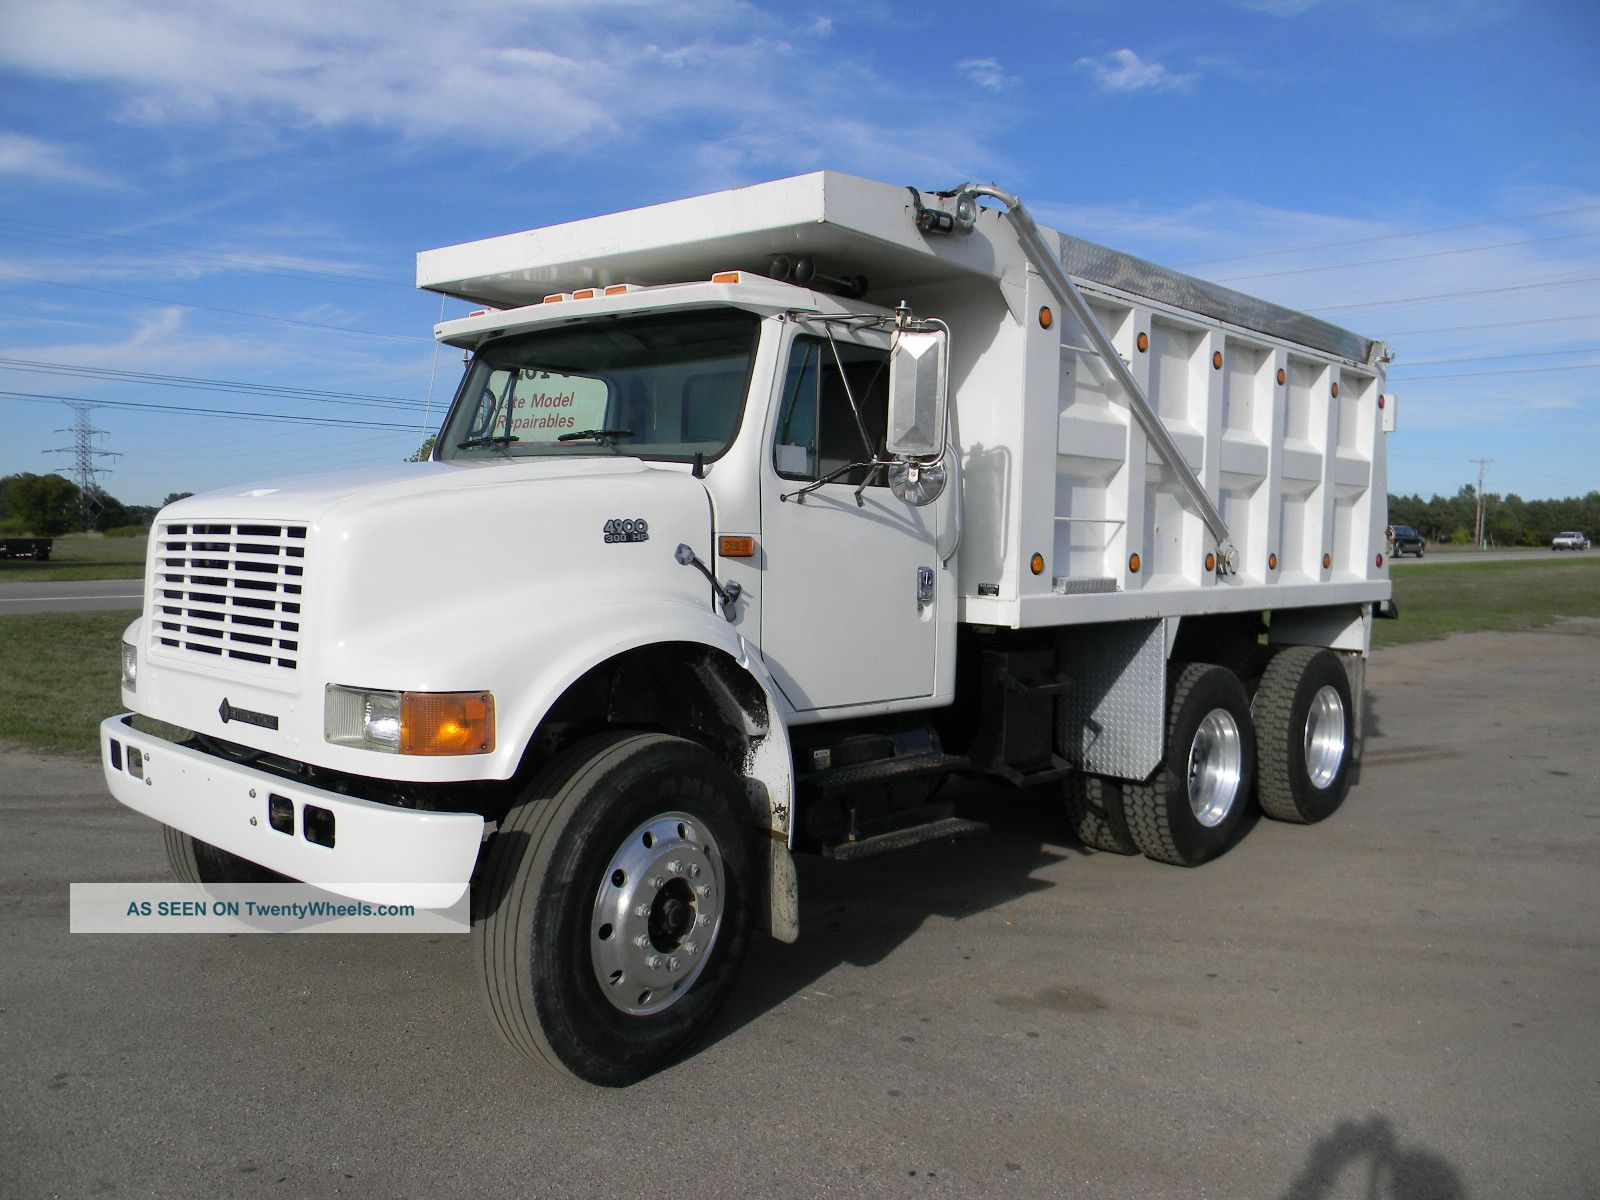 R1016 Broderson Ic 35 2a besides 10 Aluminum Wheelchair Entry R  Handrails likewise Download moreover Truck With Mounted Crane likewise 39906 2005 freightliner m2 106. on semi truck cranes